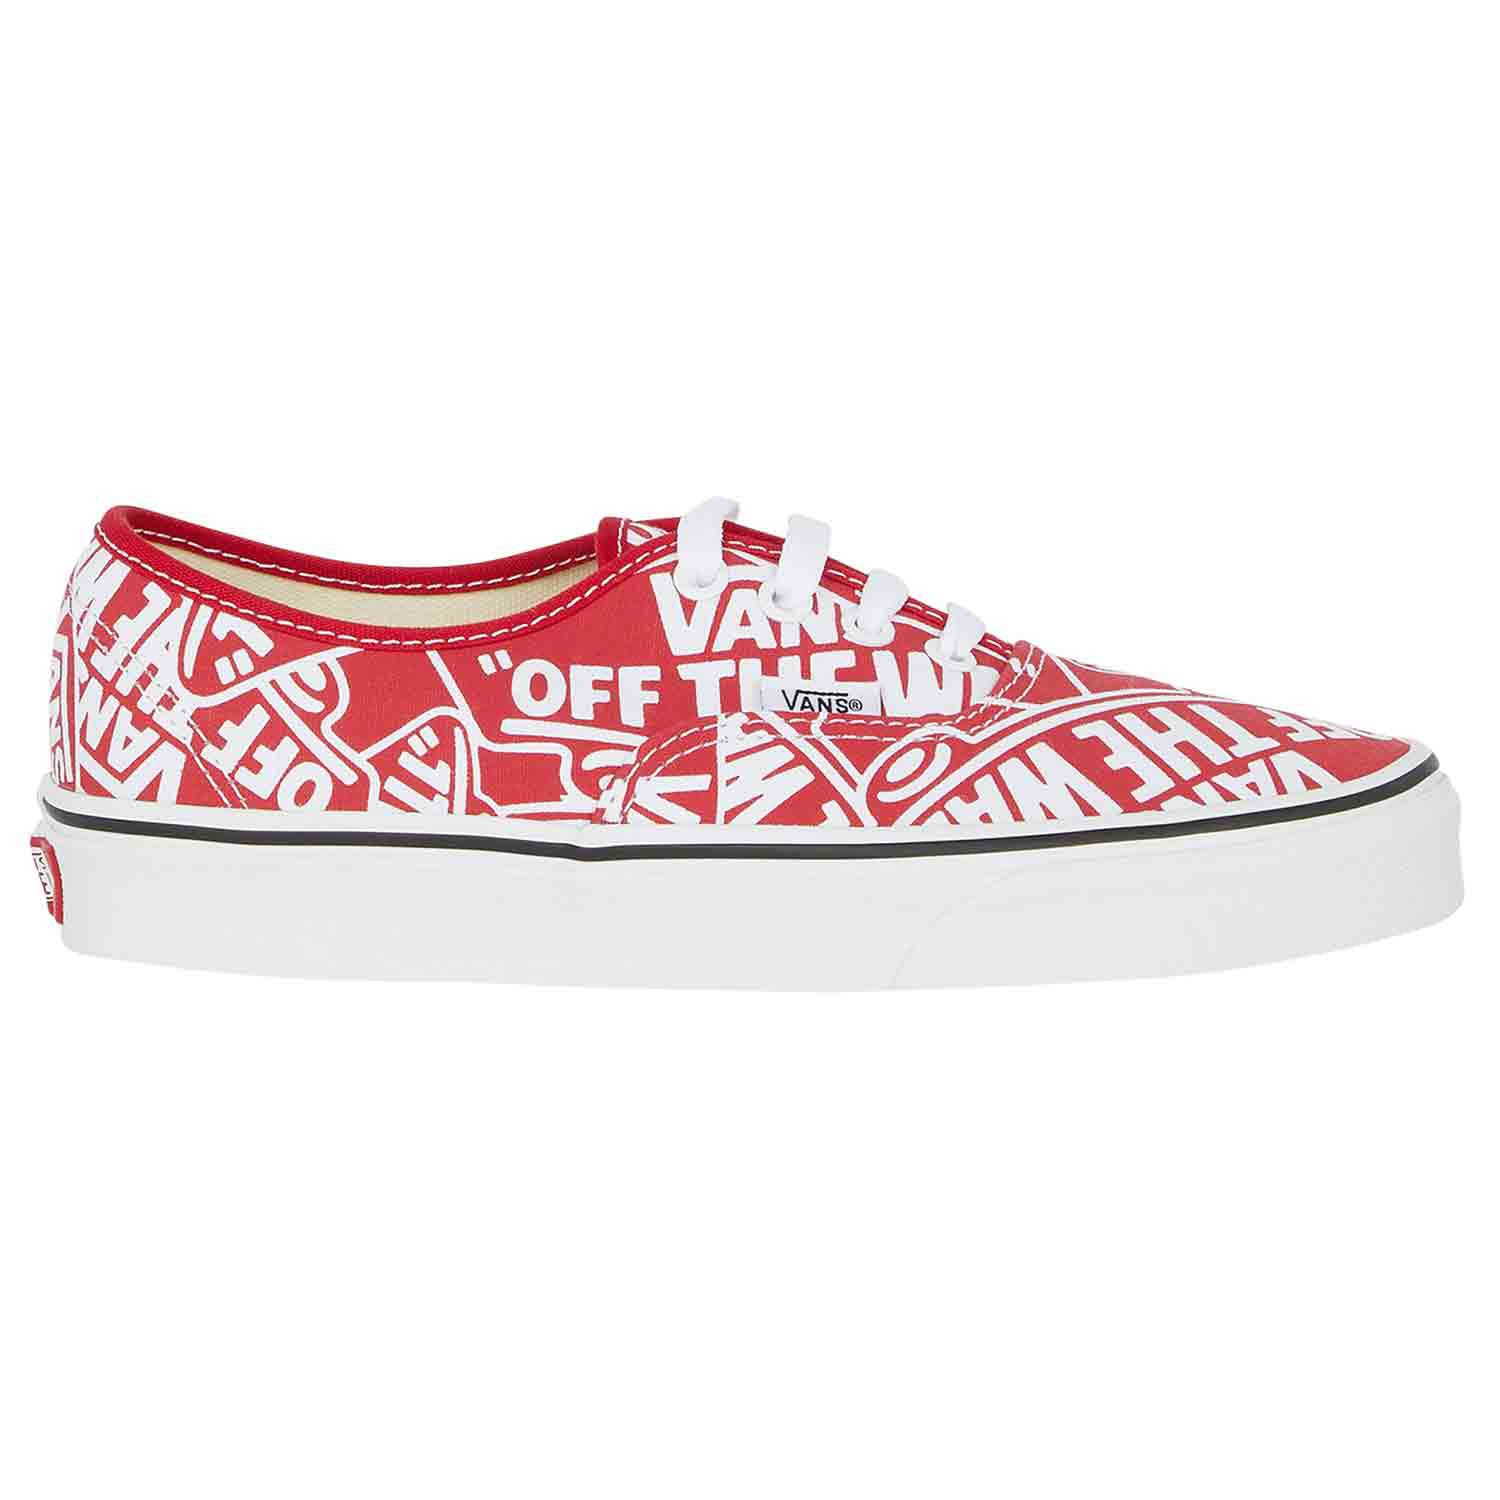 6e426cd994 Vans Authentic Off The Wall Repeat Unisex Footwear Shoe - Red True ...